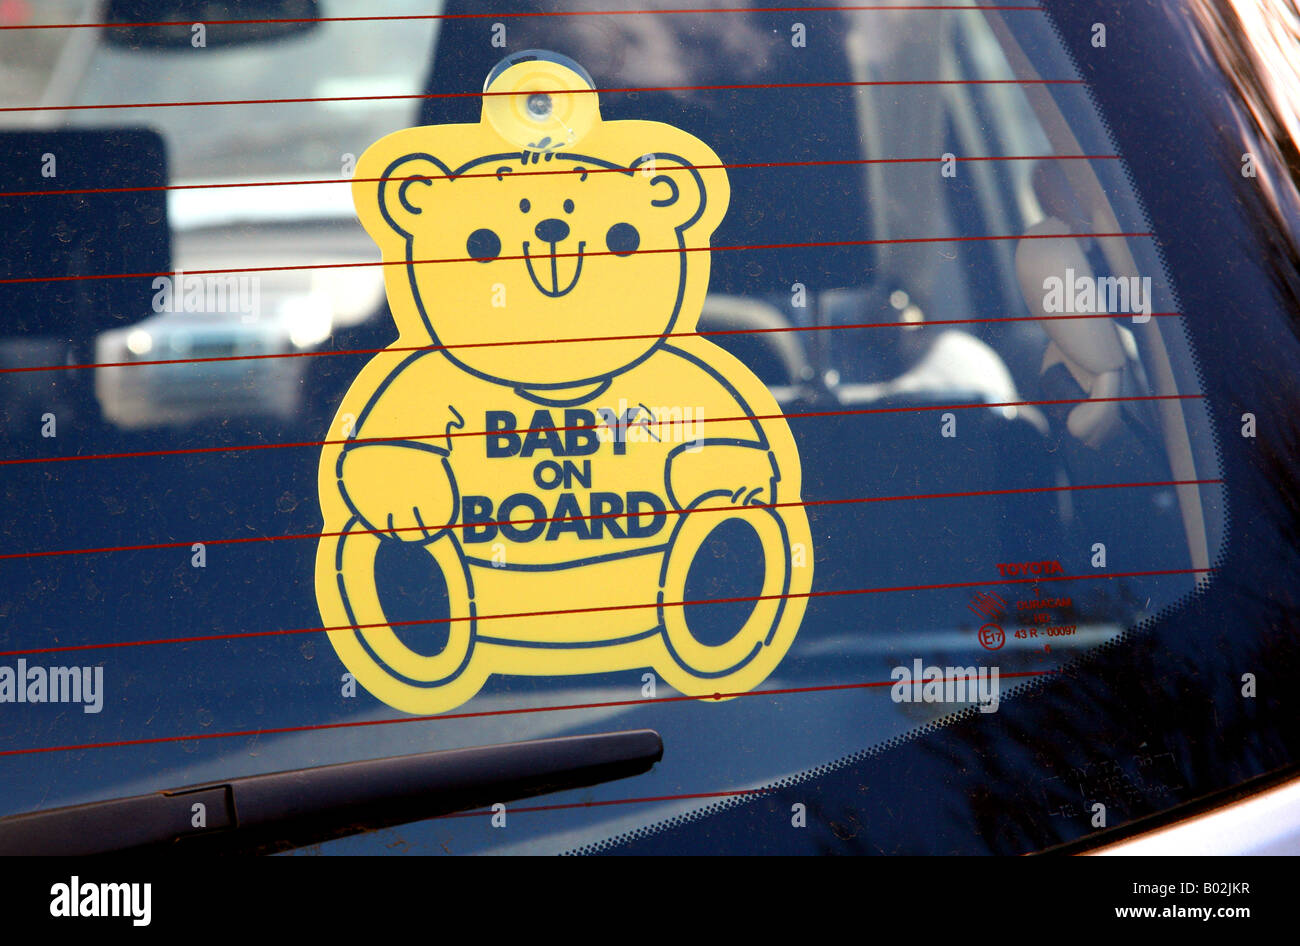 Baby on Board sign in car rear window in London - Stock Image